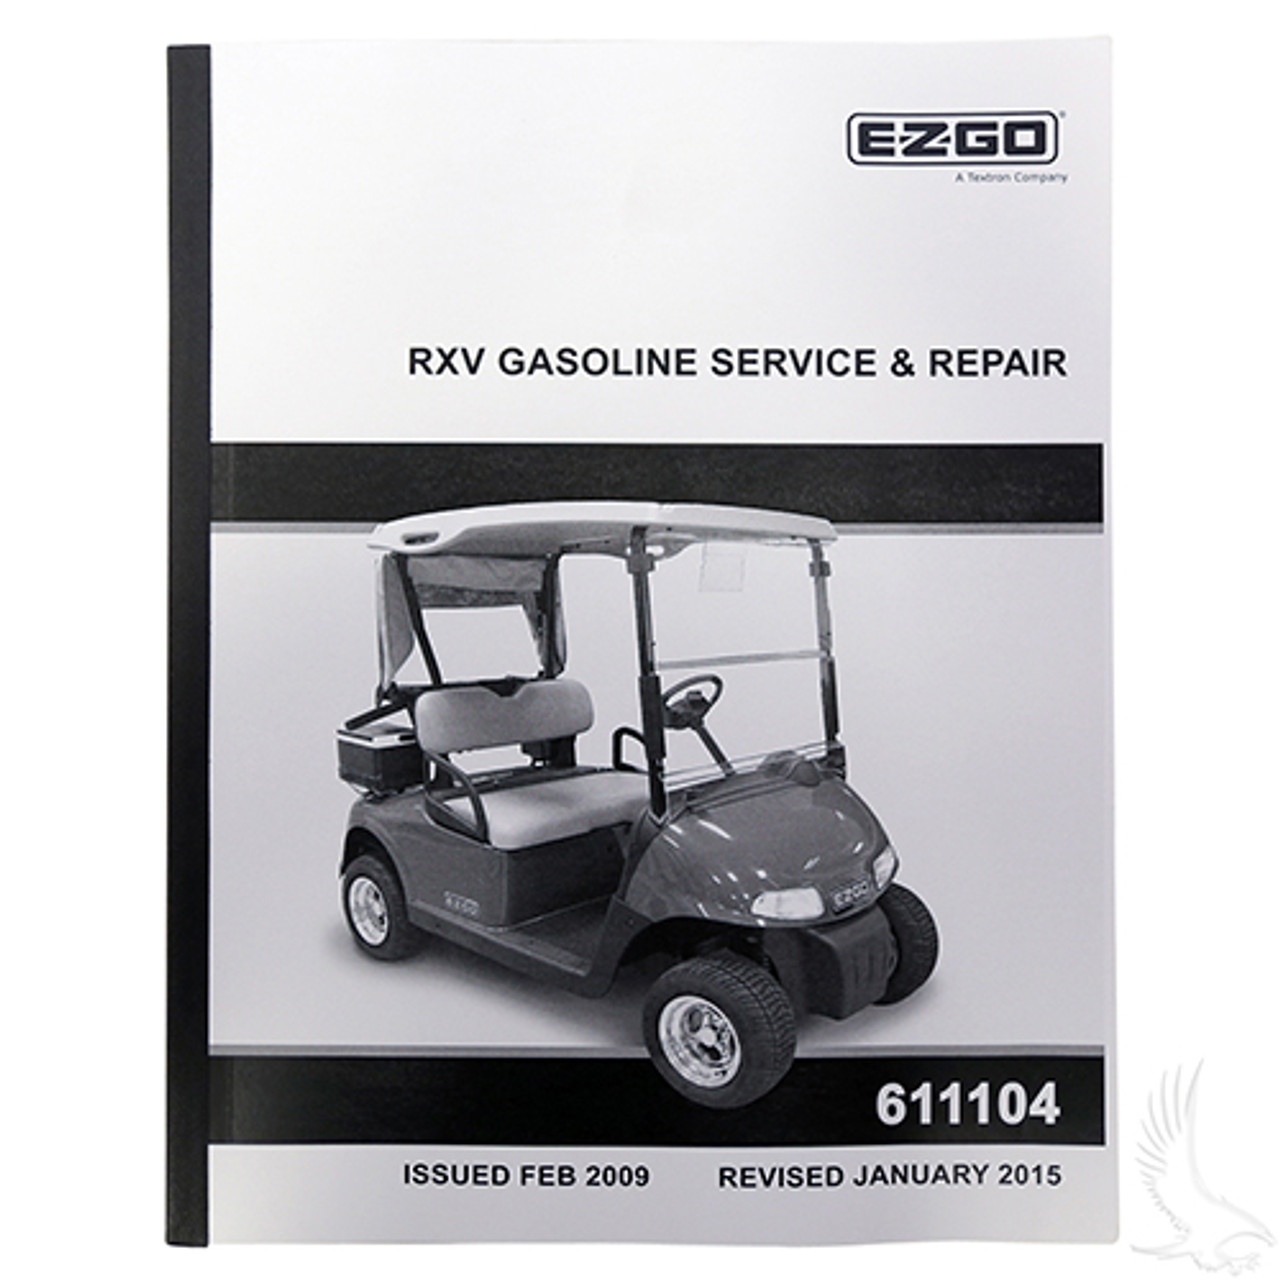 Turn Signal Kit For Ezgo Rxv Manual Guide